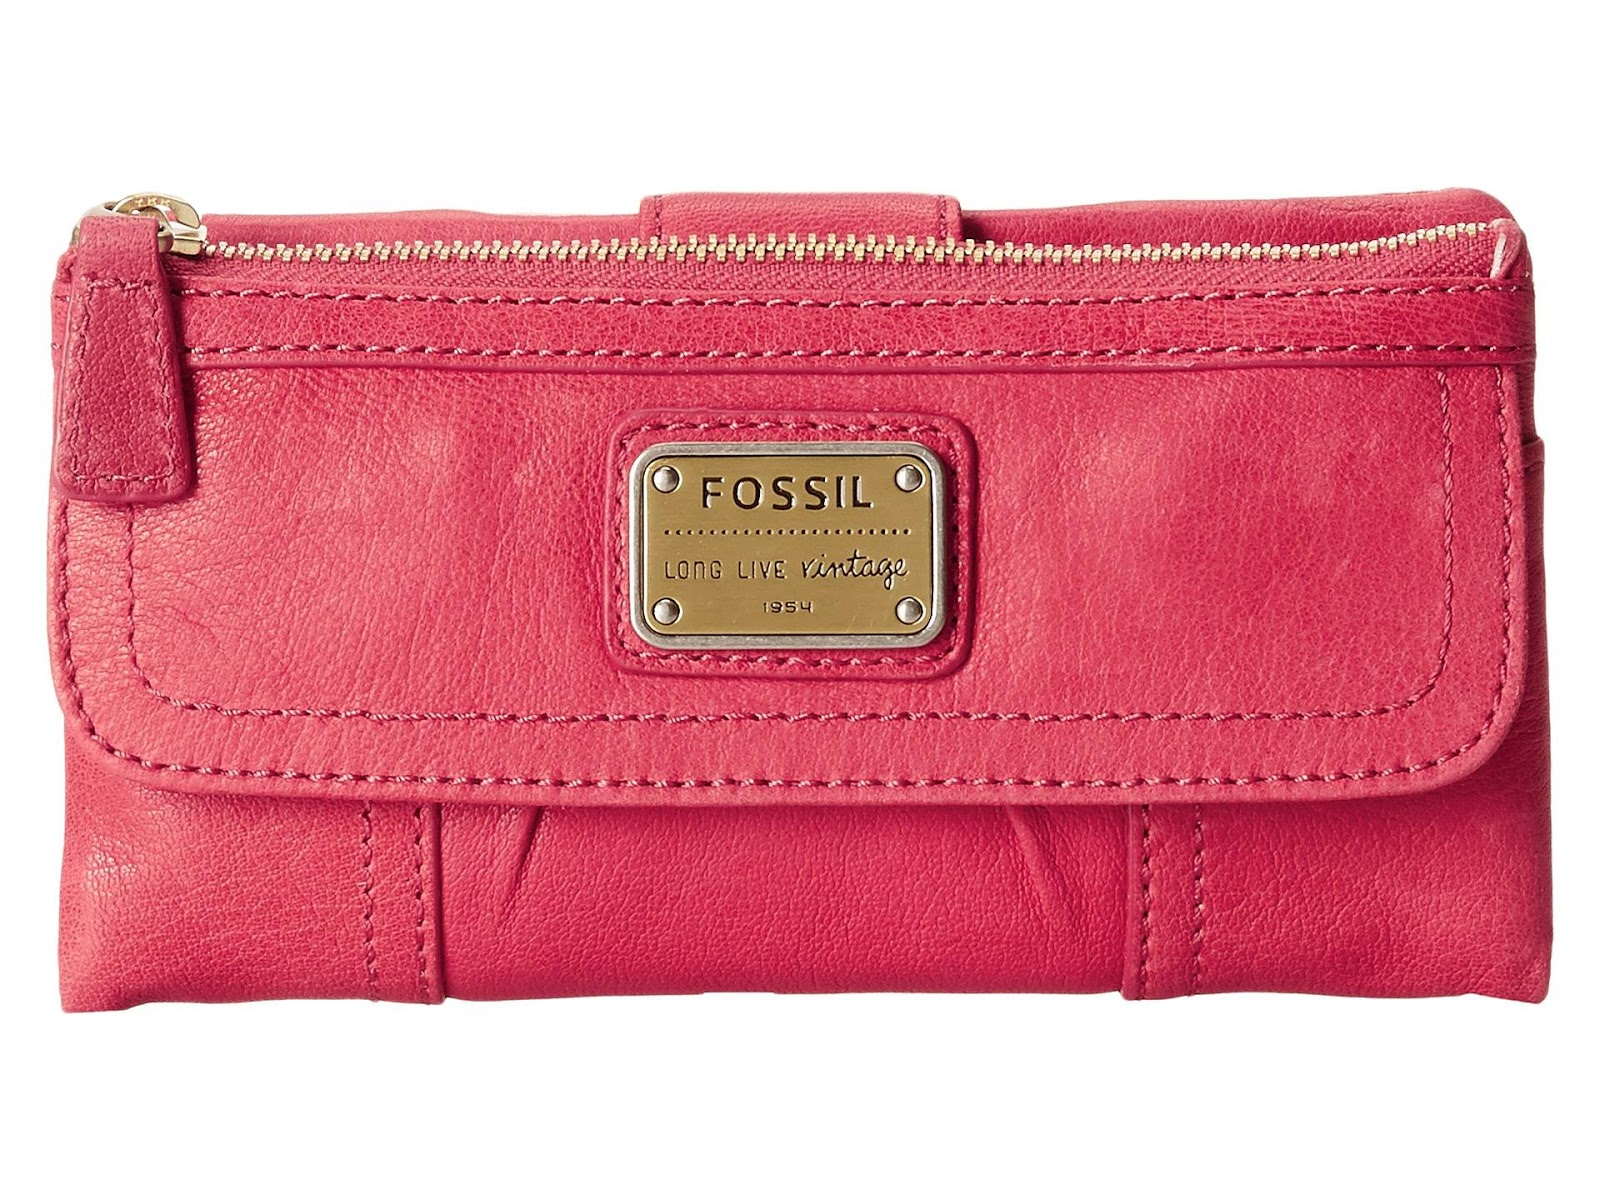 USA Boutique: Fossil Emory Leather Clutch Wallet